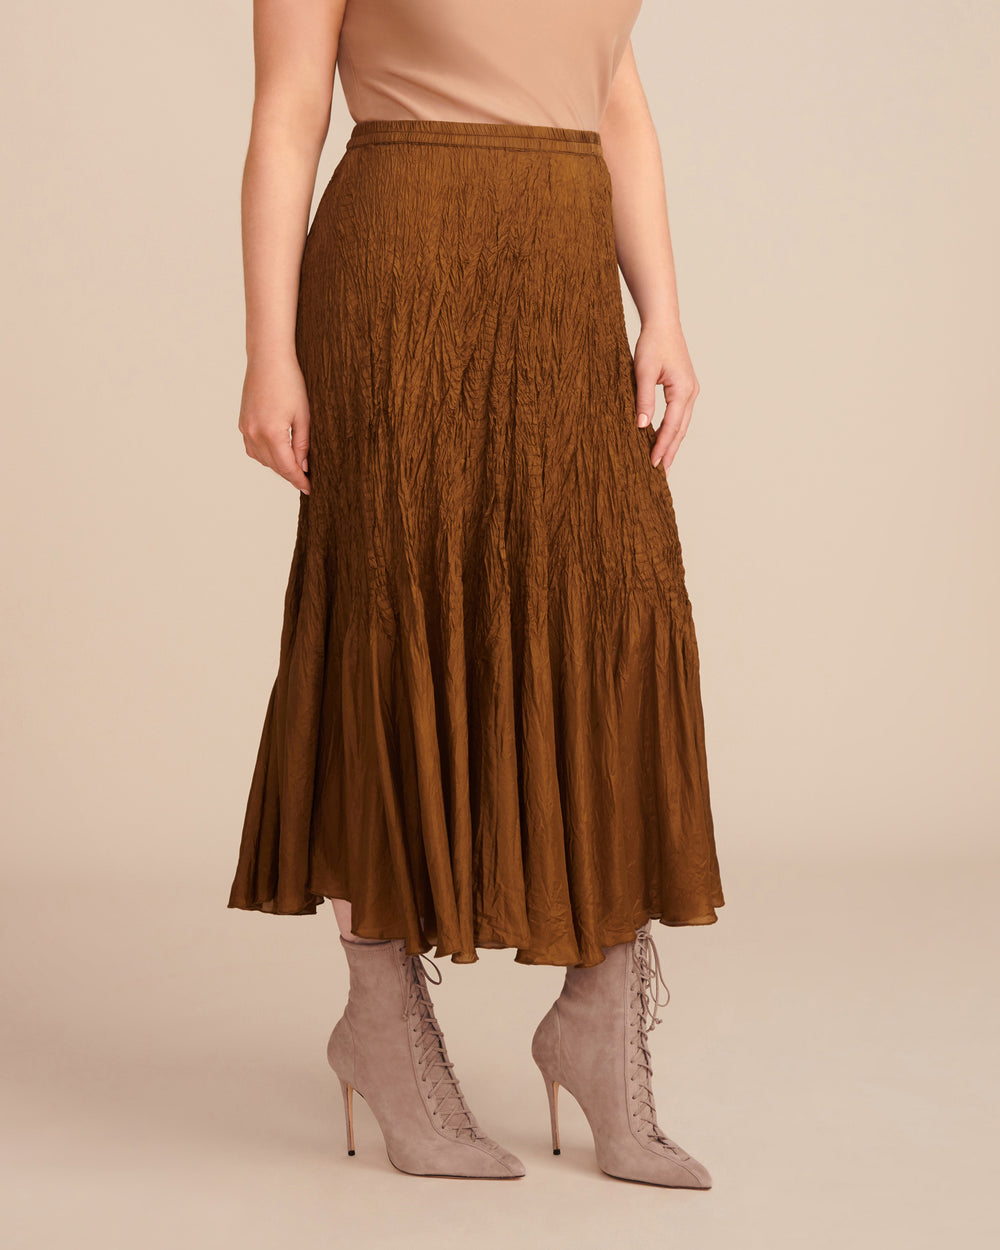 Phedre Antik Skirt